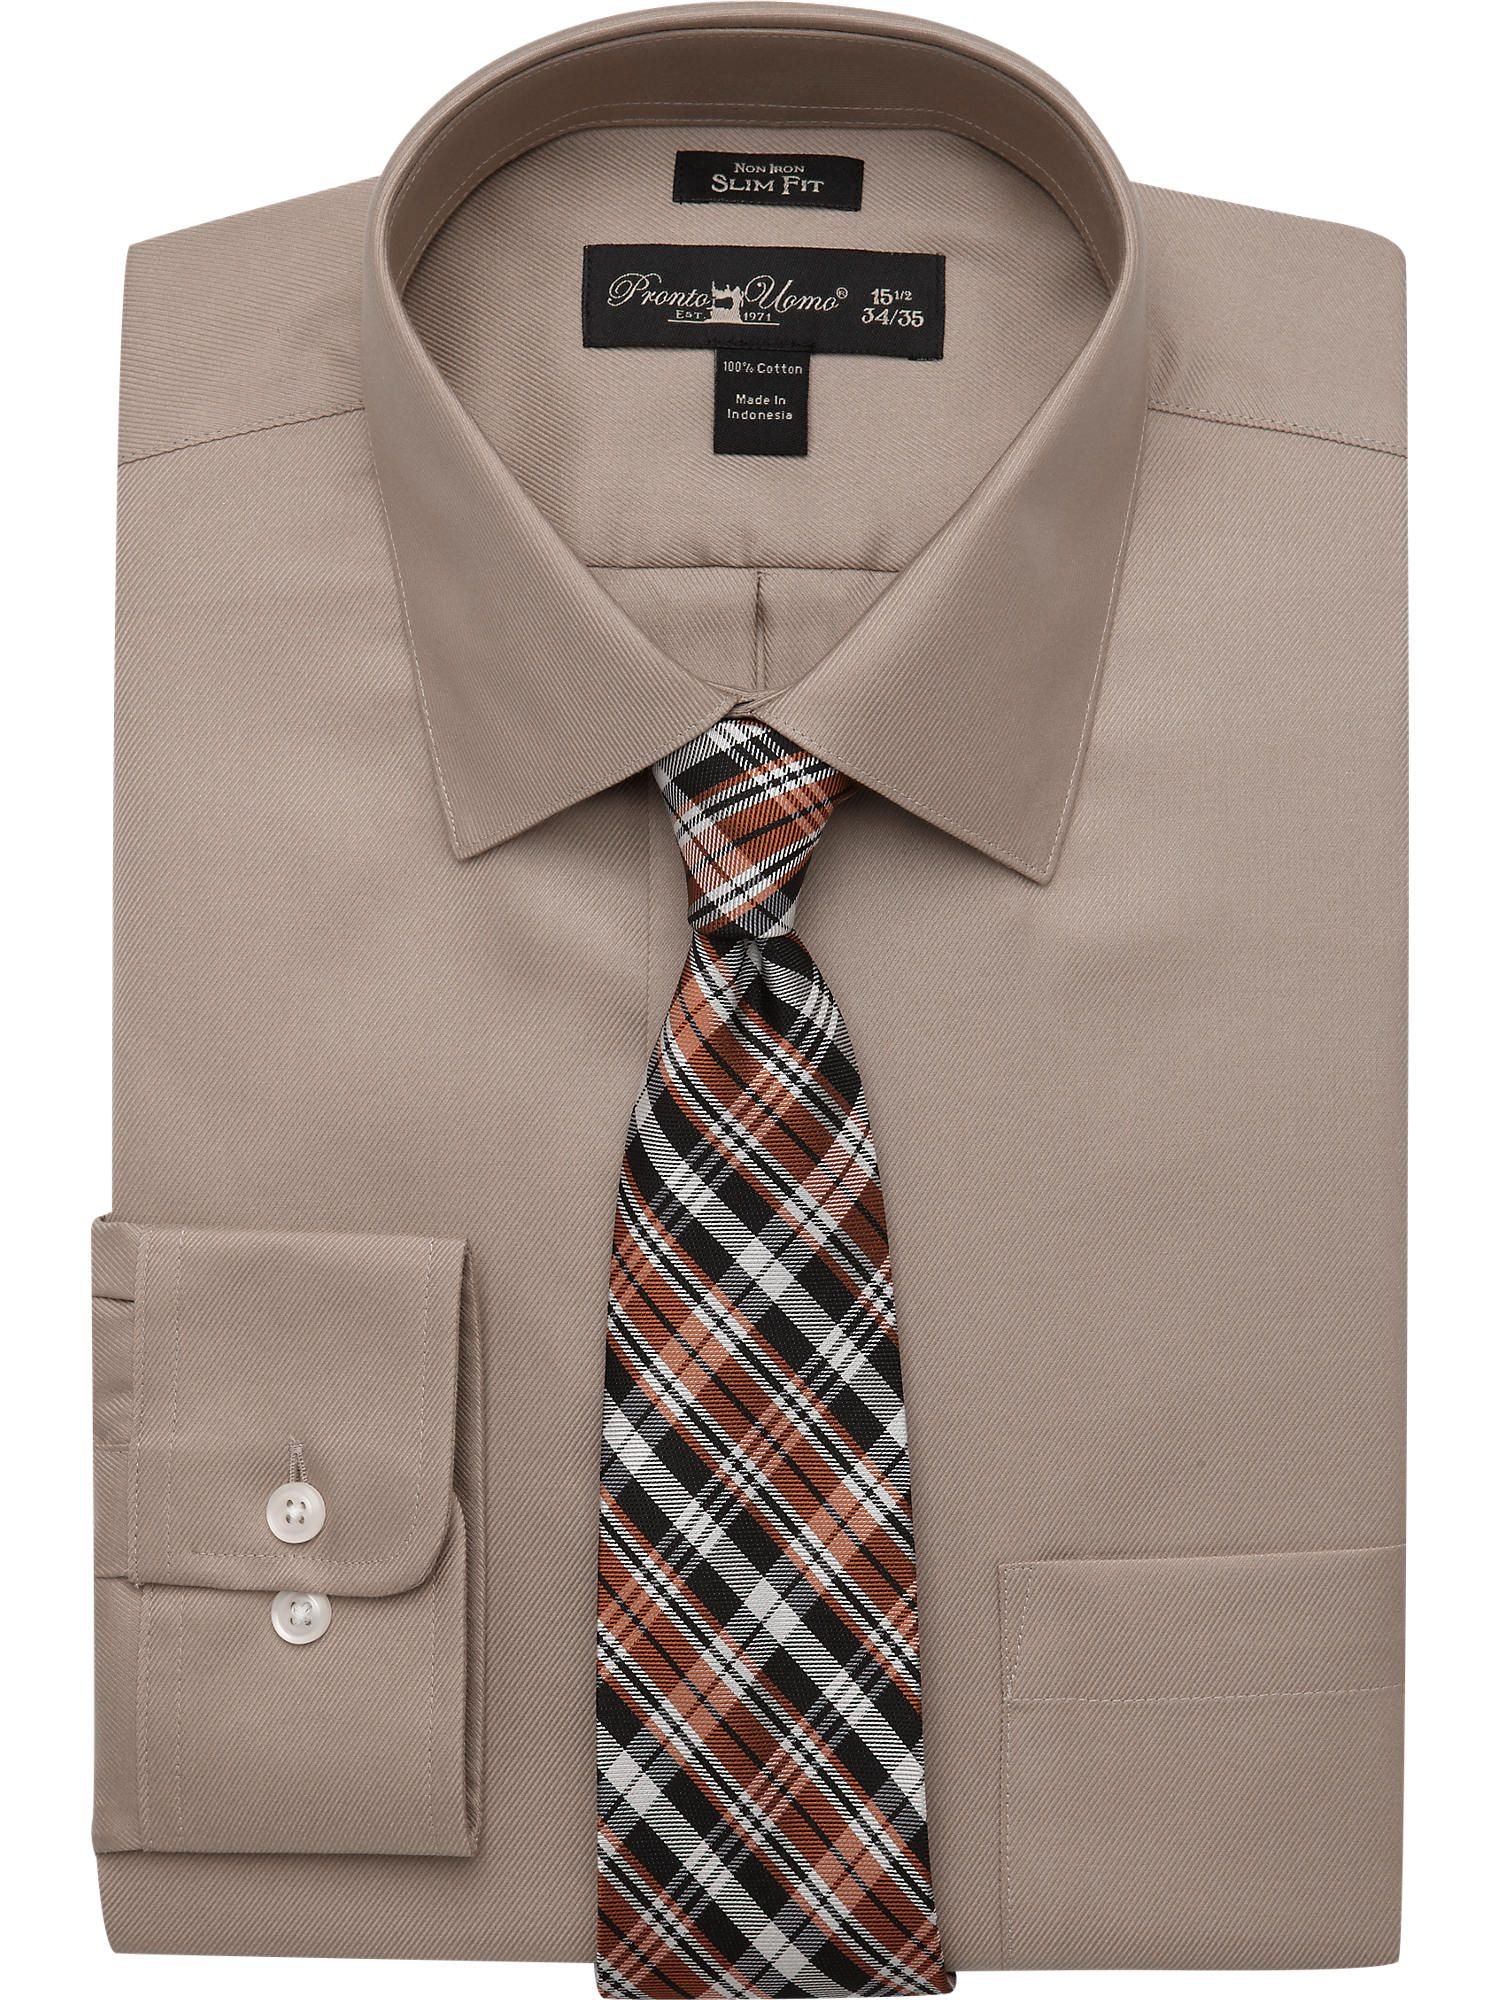 Solid Taupe Shirt & Orange Plaid Tie - Shirt and Tie ... - photo#50